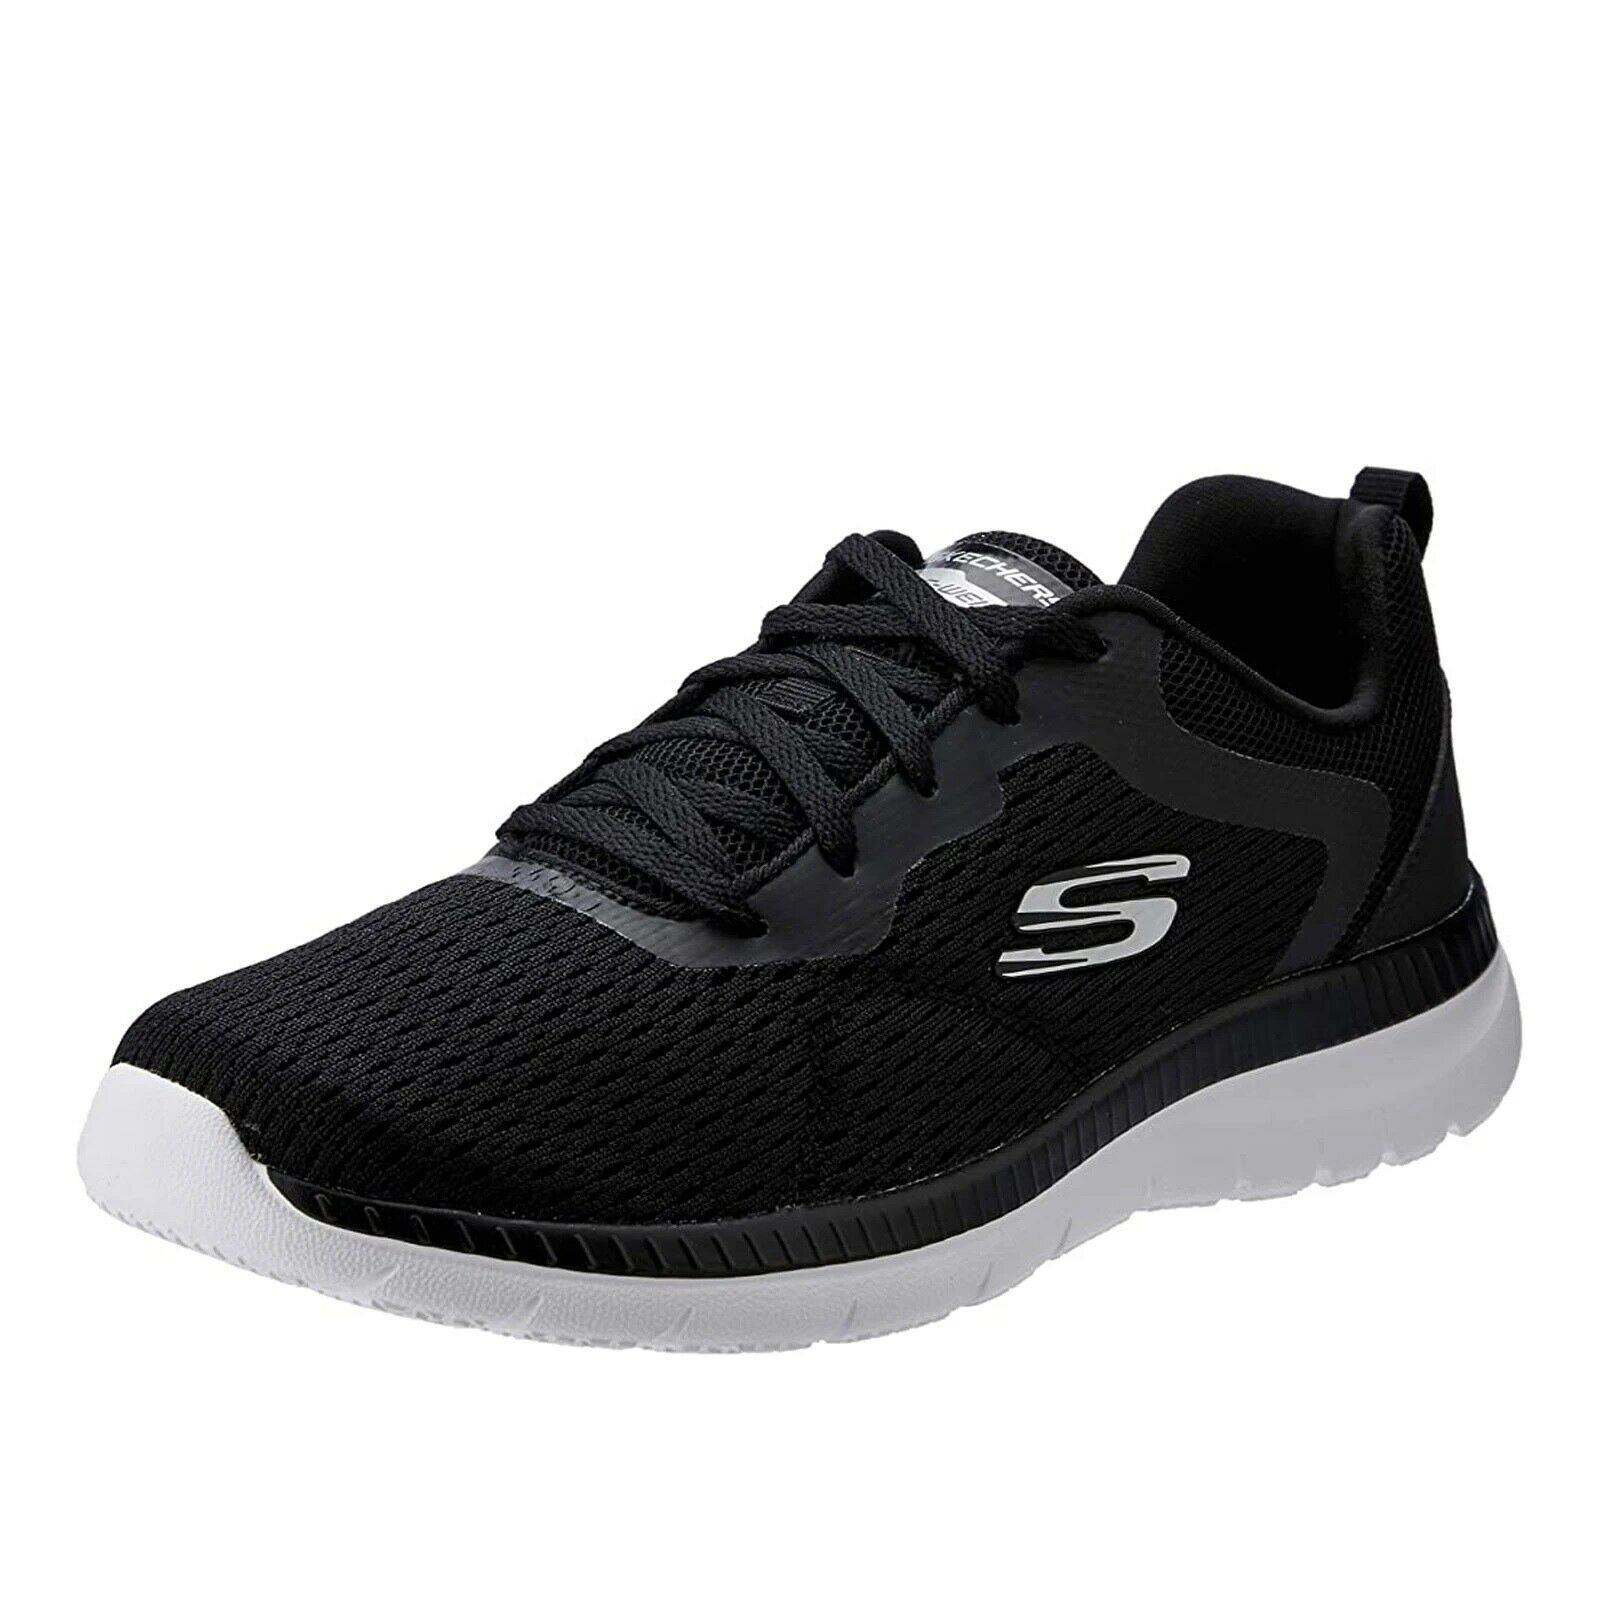 Primary image for SKECHERS Bountiful - Quick Path Women's Athletic Sneakers 12607 BLACK / WHITE